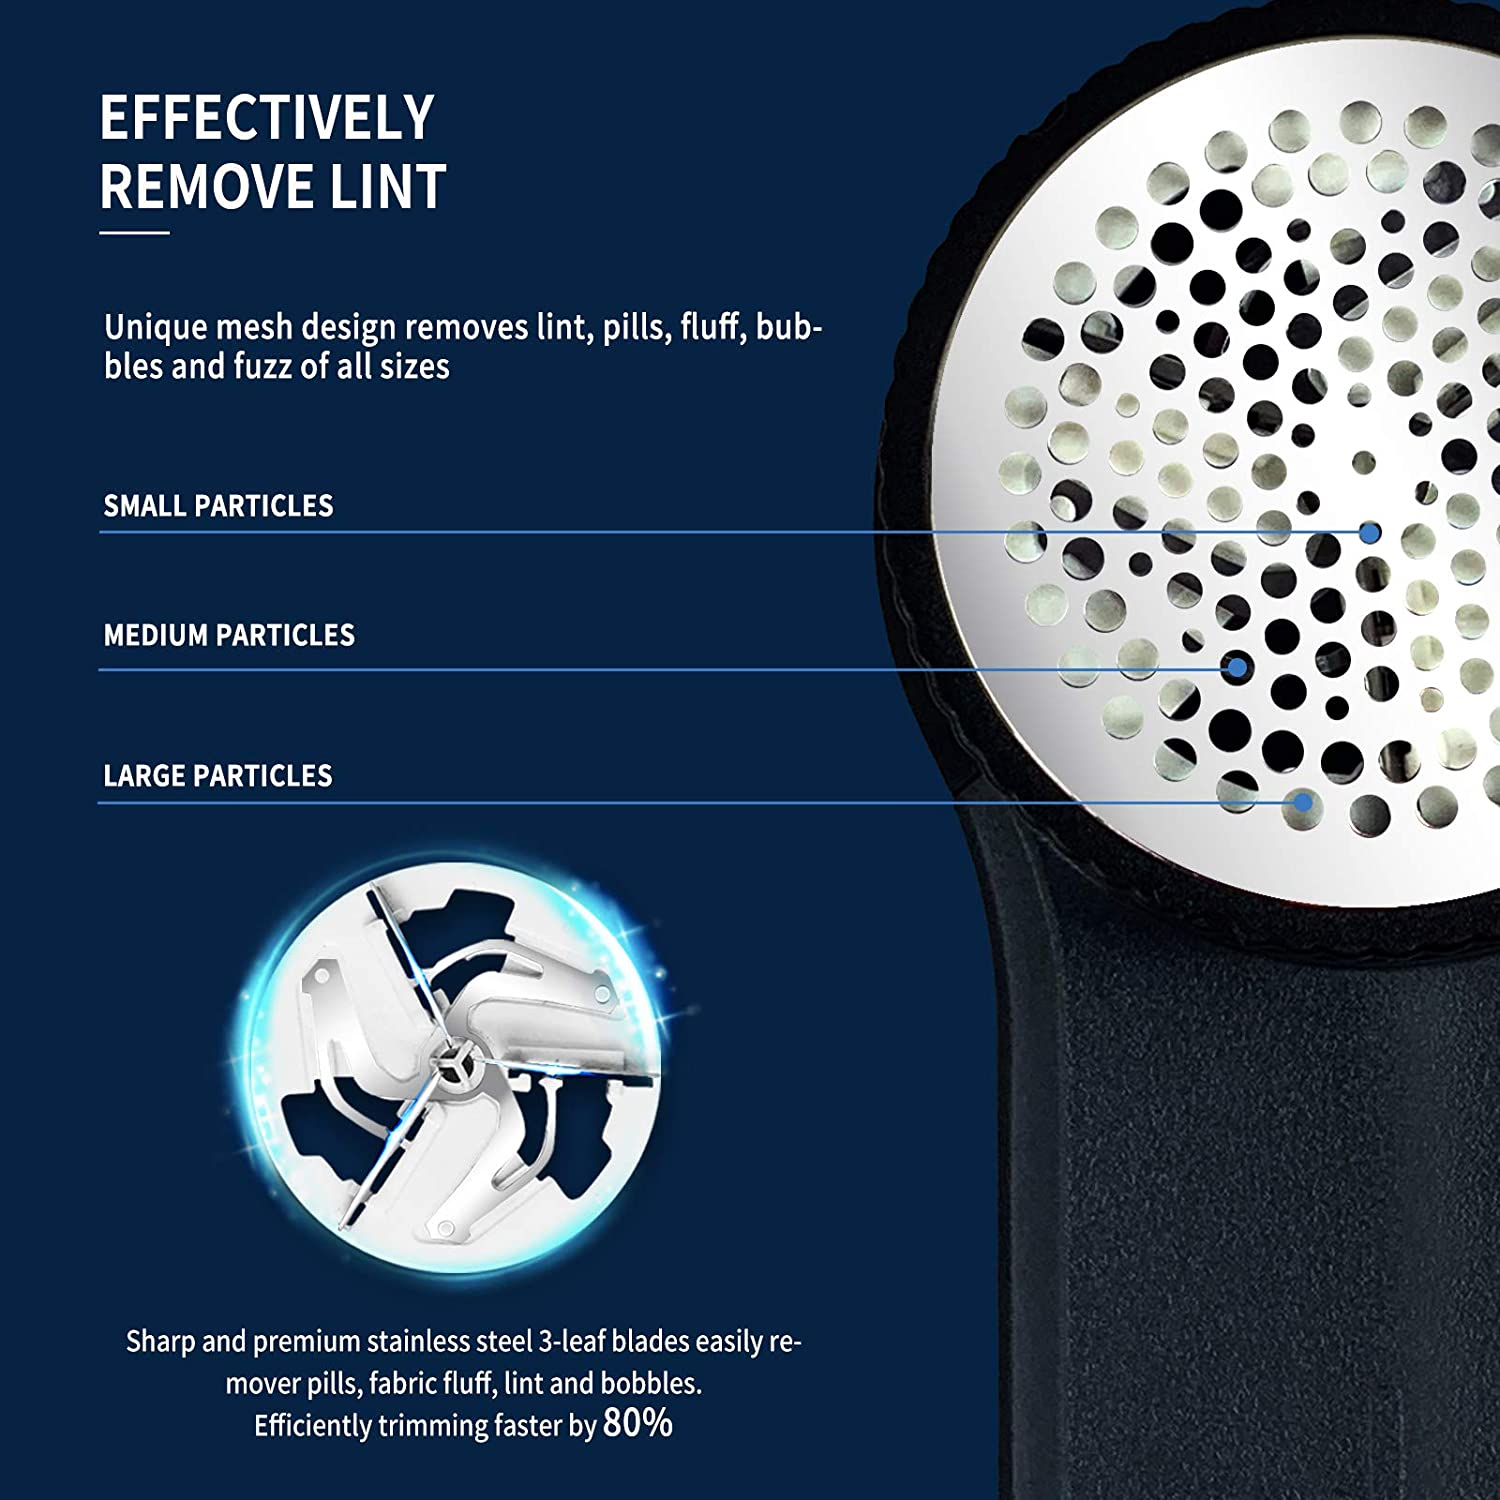 Fabric Shaver Lint Remover, MEOMY Sweater Defuzzer with 3-Speeds, 2 Replaceable Stainless Blades USB Rechargeable Operated Elect